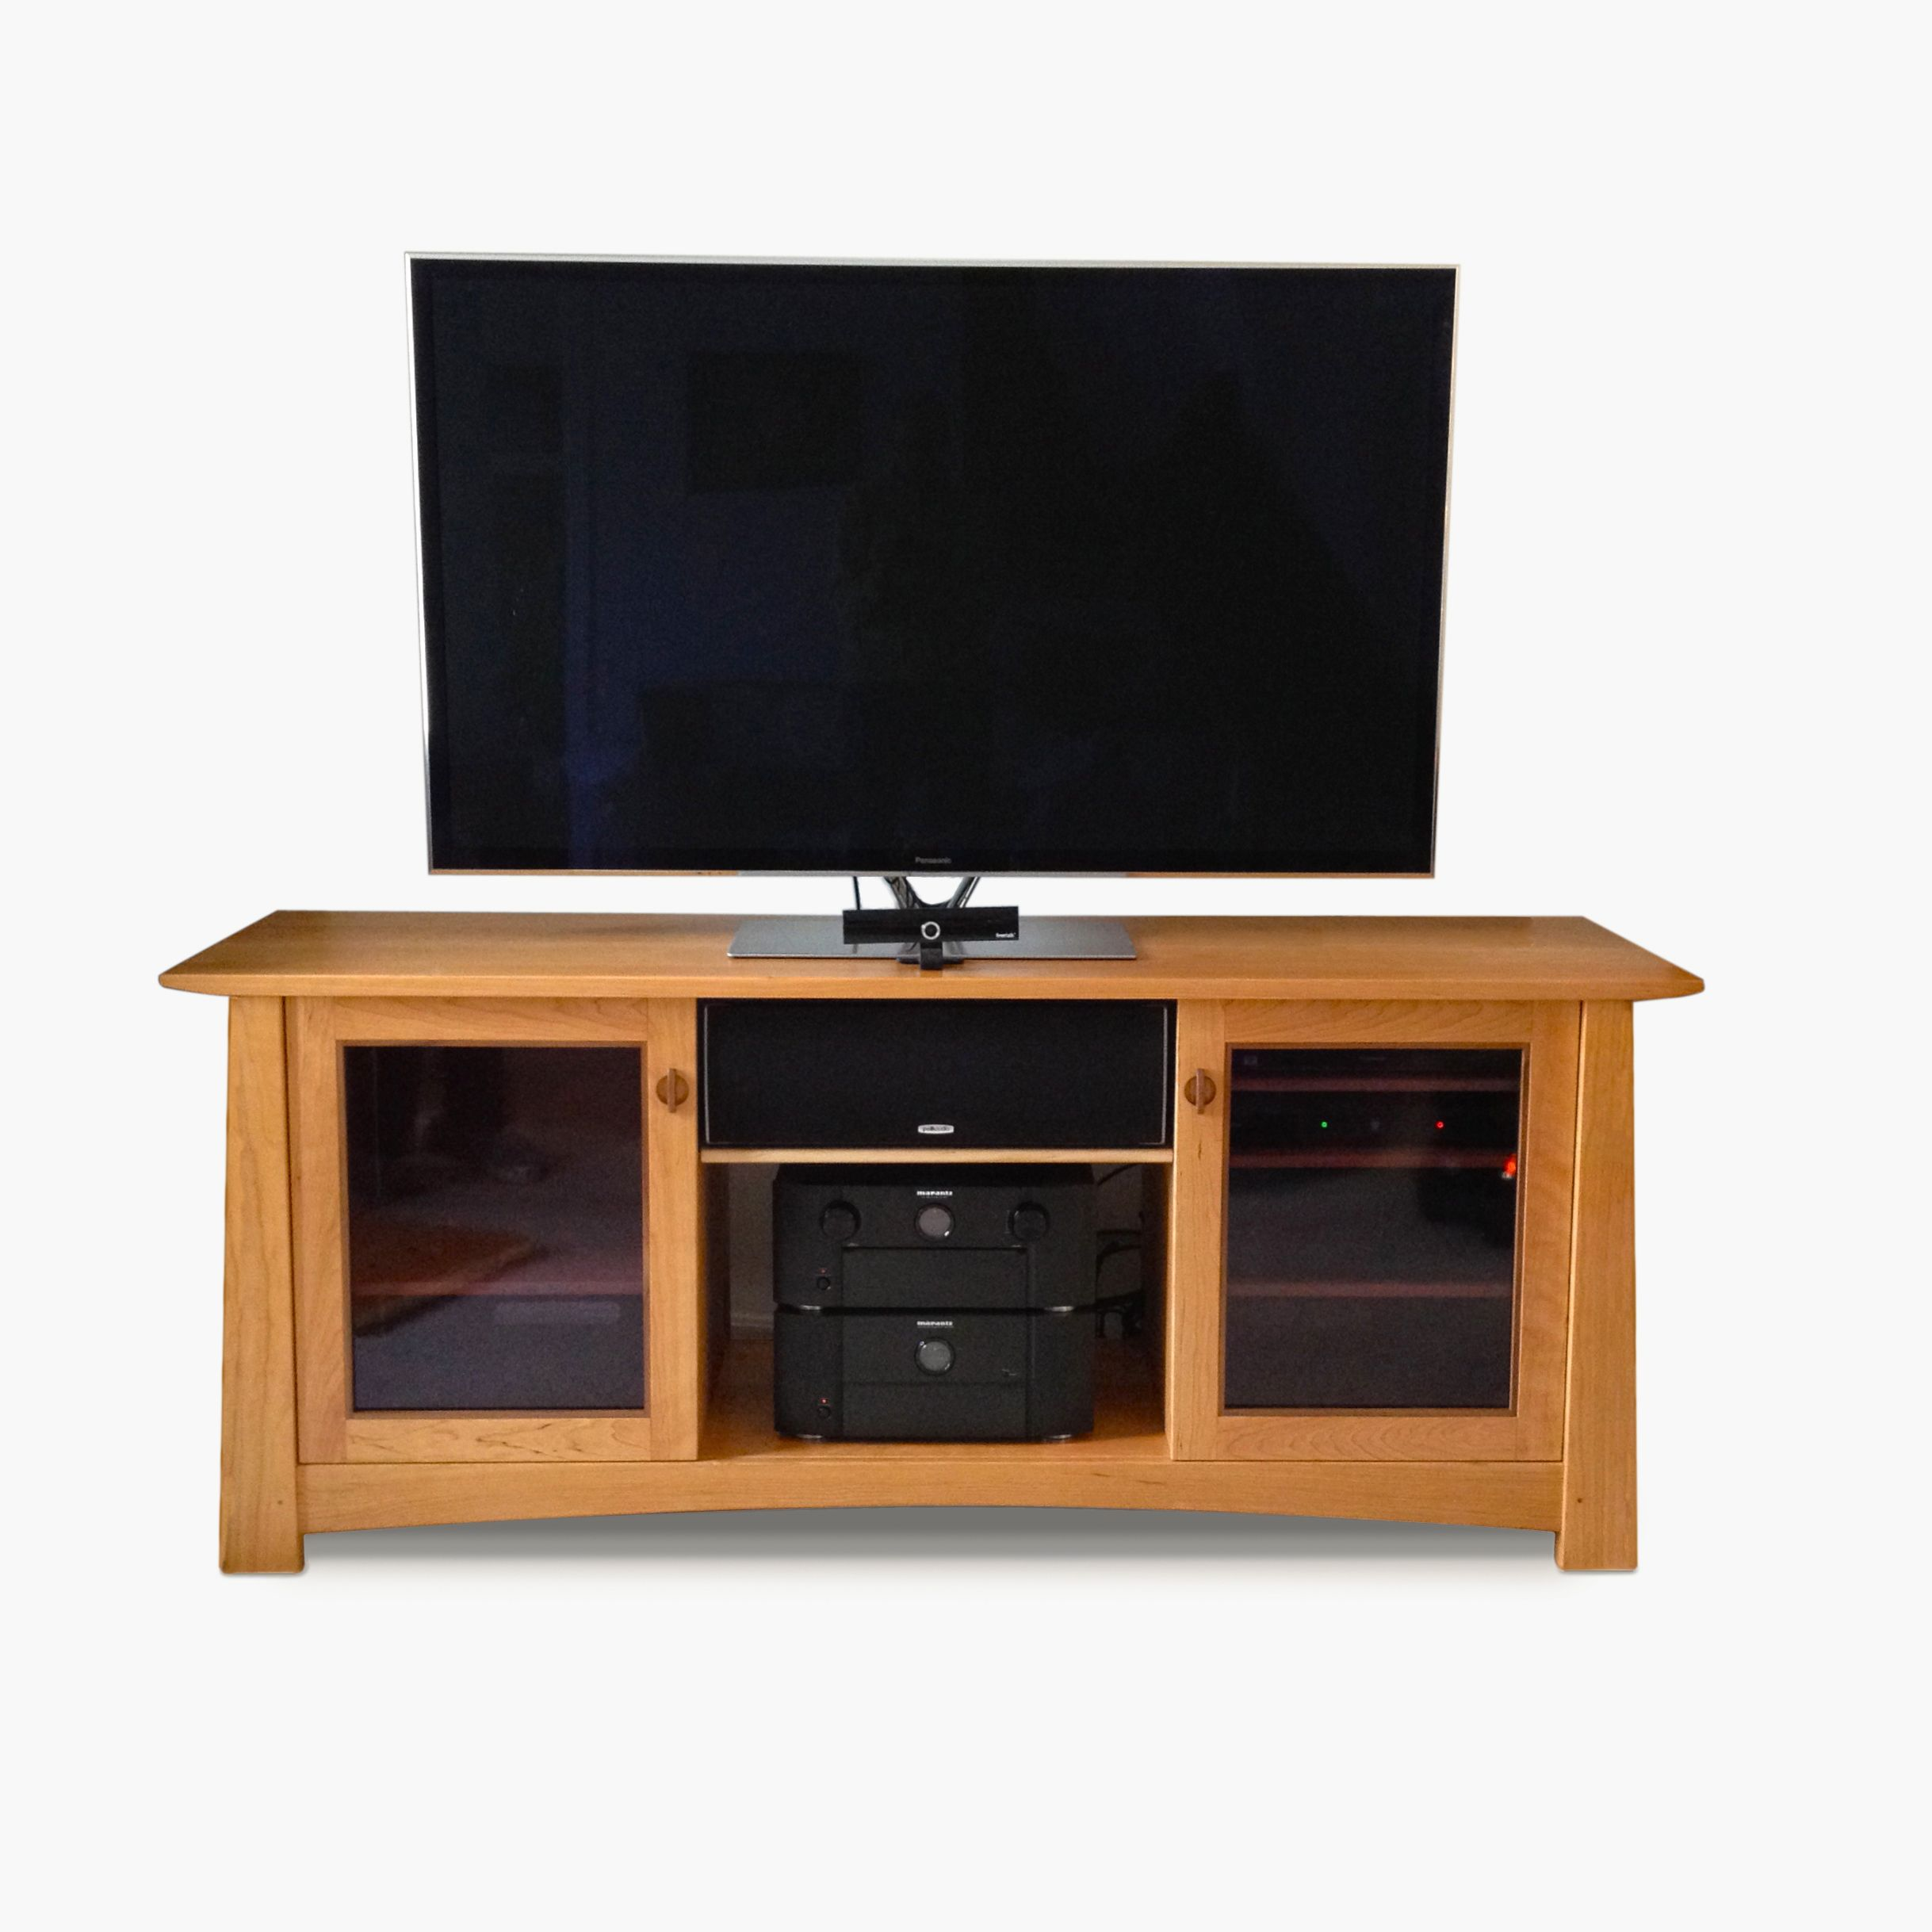 Custom art 39 s and crafts tv stand console purple moon - Made com meuble tv ...